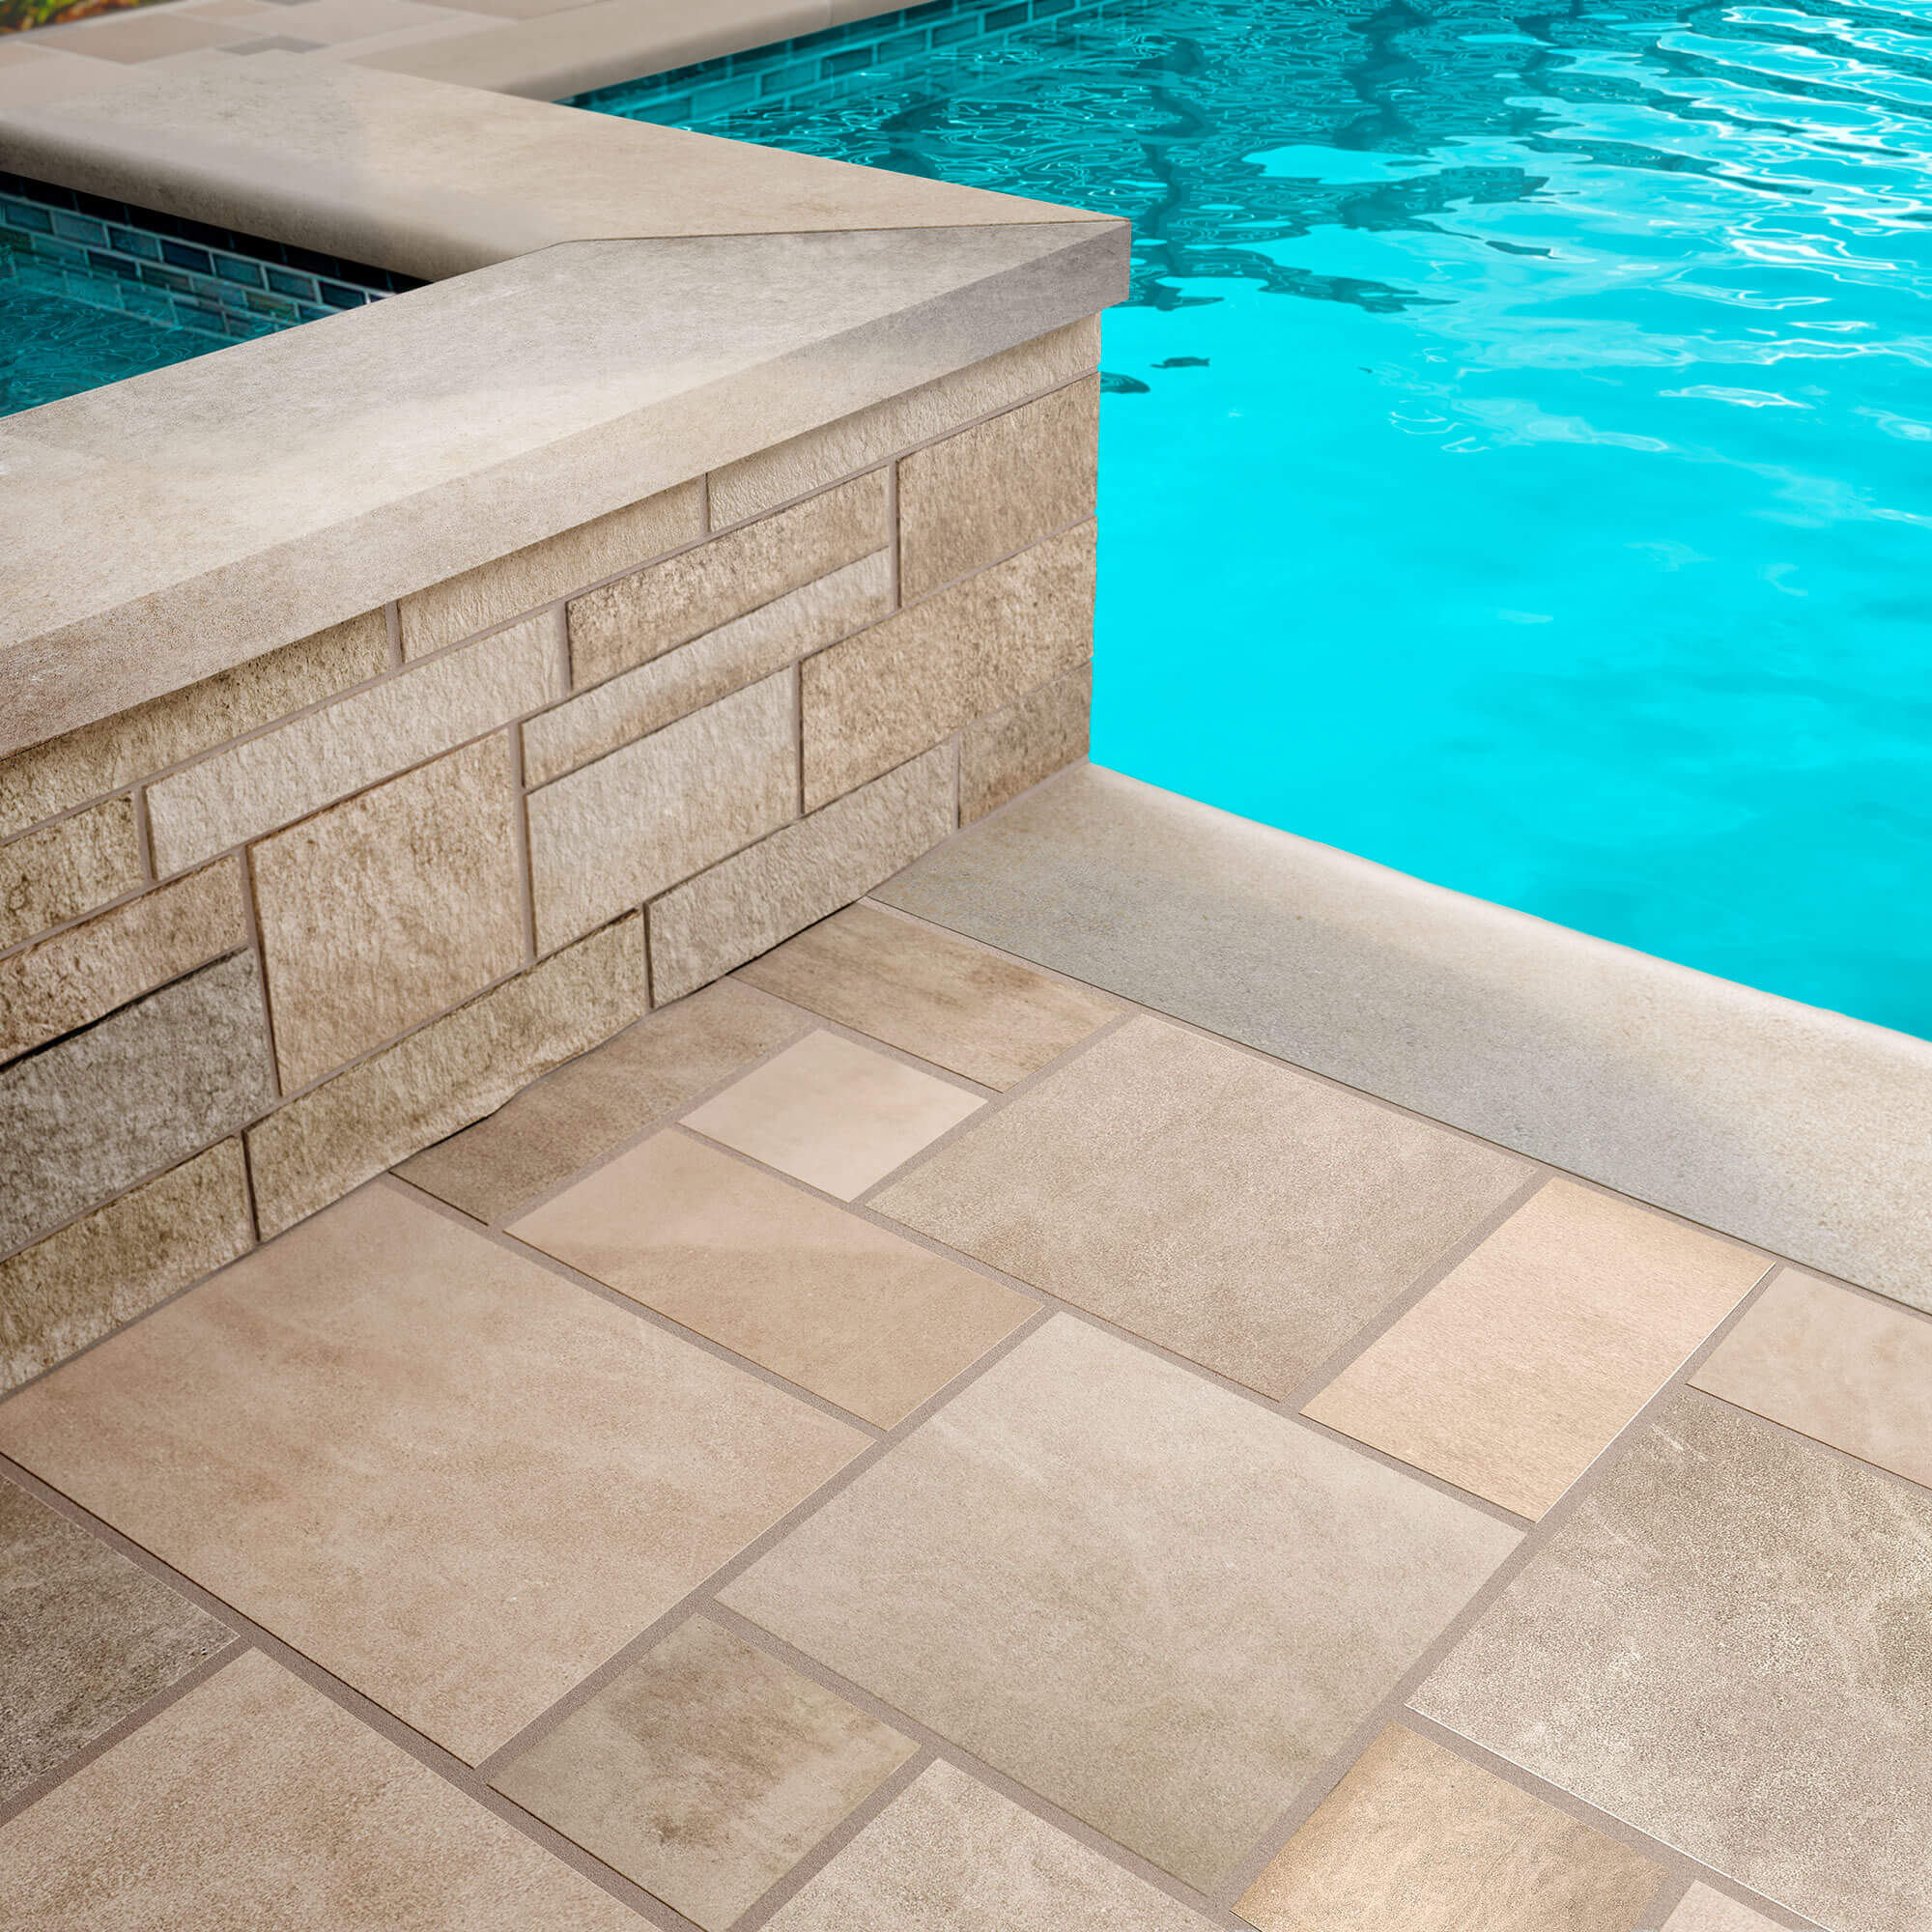 Poolside Project 5 - Polycor Hardscapes